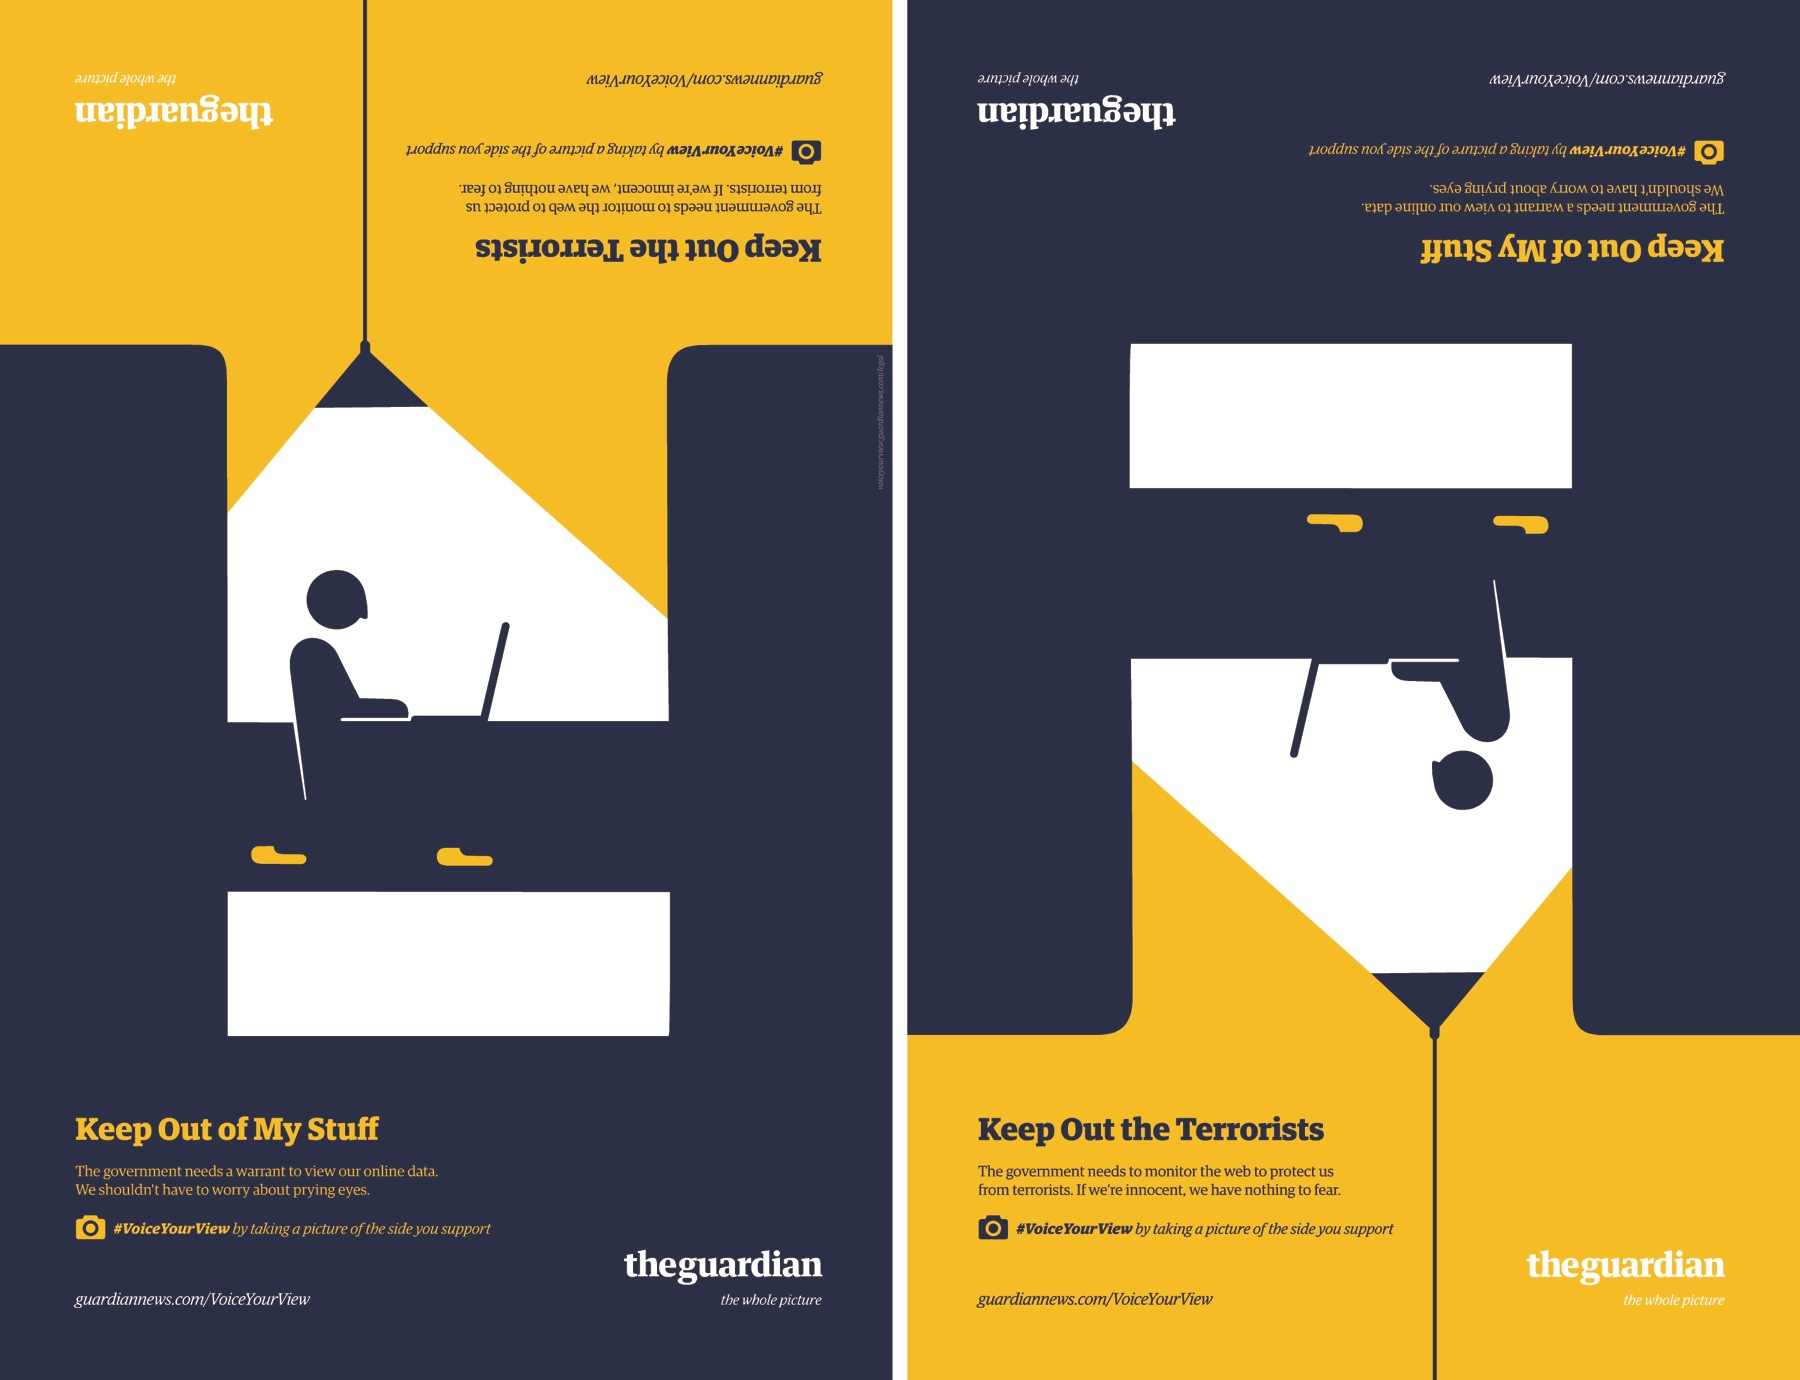 Guardian Outdoor Advert By BBH: Internet privacy | Ads of the World™